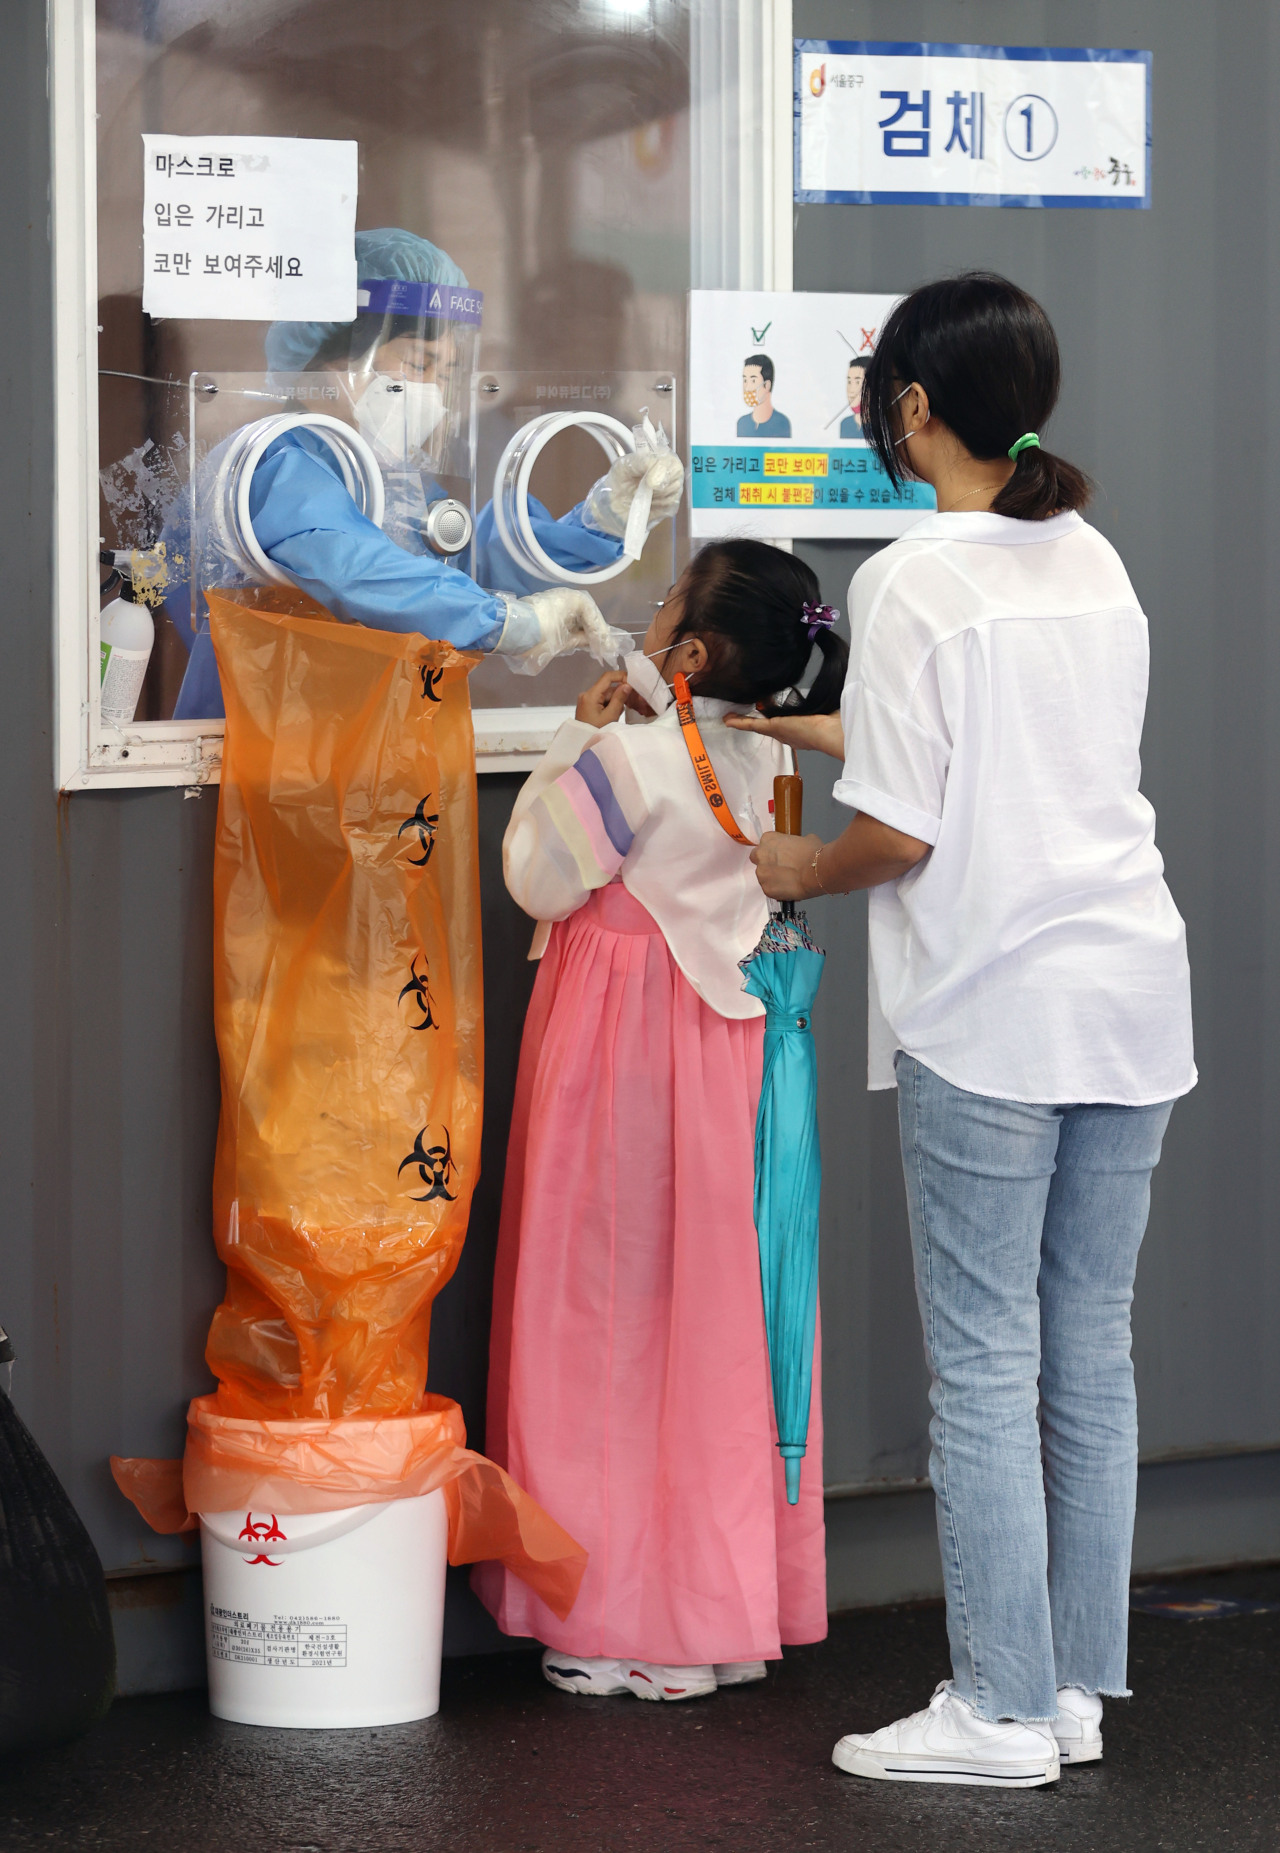 A child wearing traditional Korean clothing hanbok gets a COVID-19 test at a screening station in central Seoul on Chuseok, the Korean harvest holiday, on Tuesday(Yonhap)